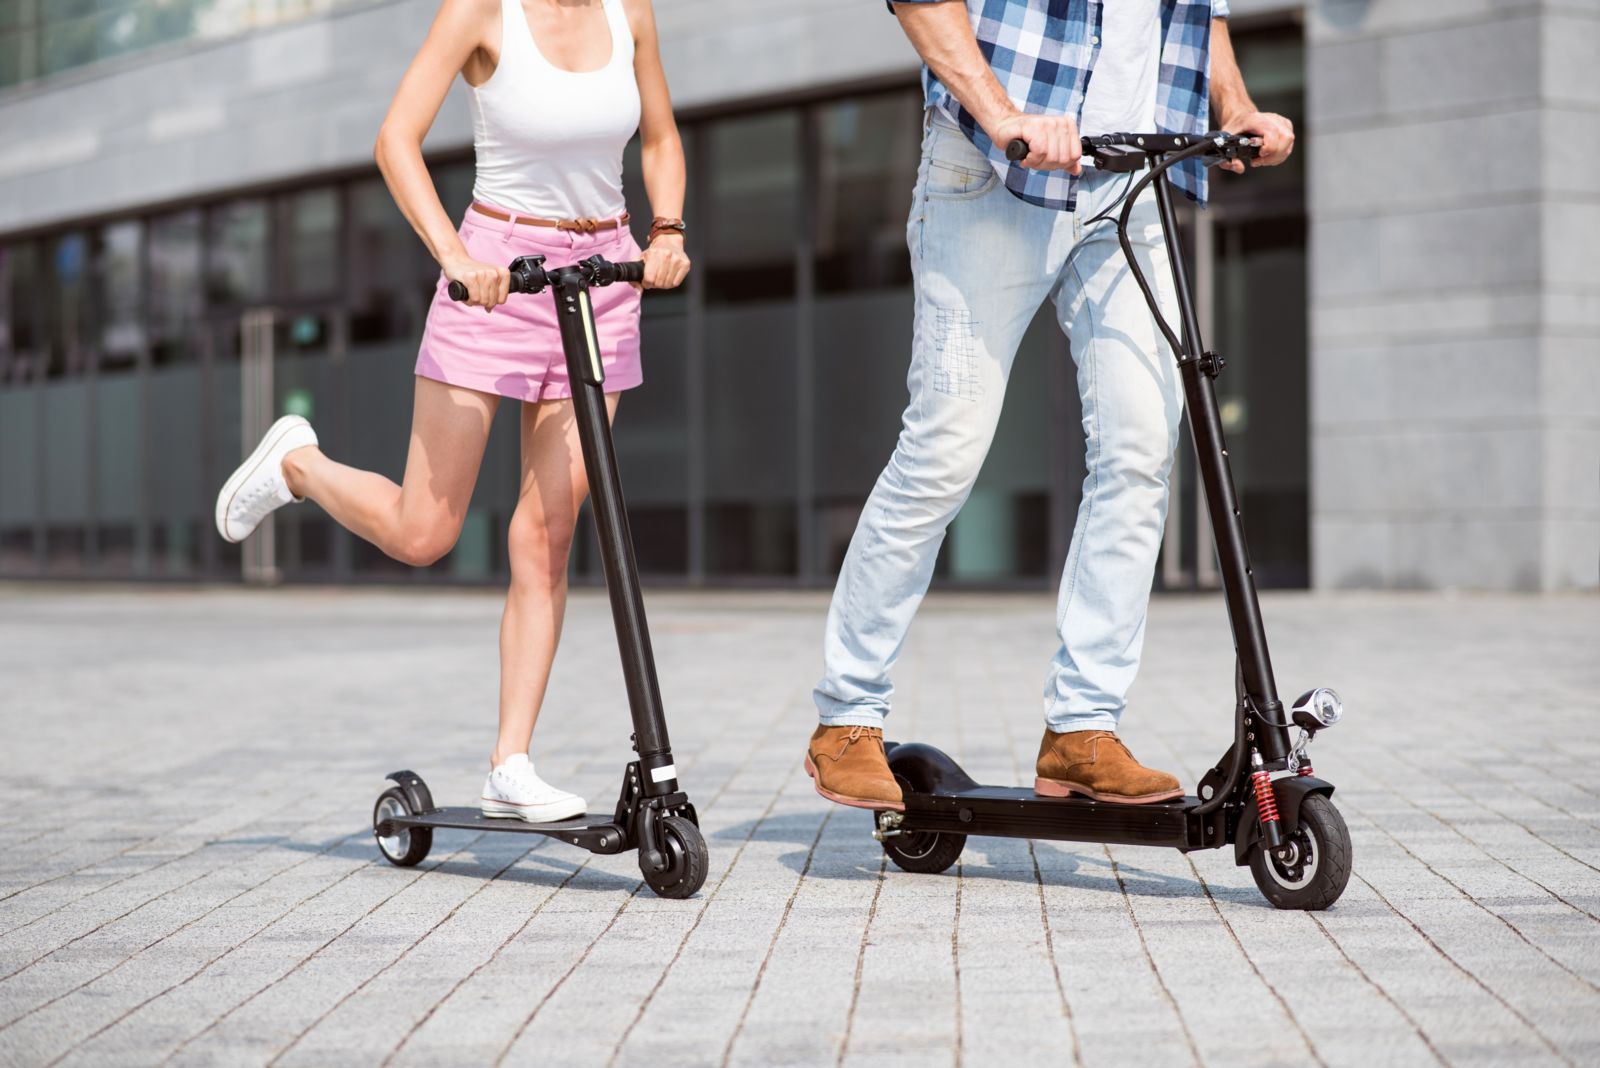 Injury Attorney Lime Bird Scooter Kansas City Missouri